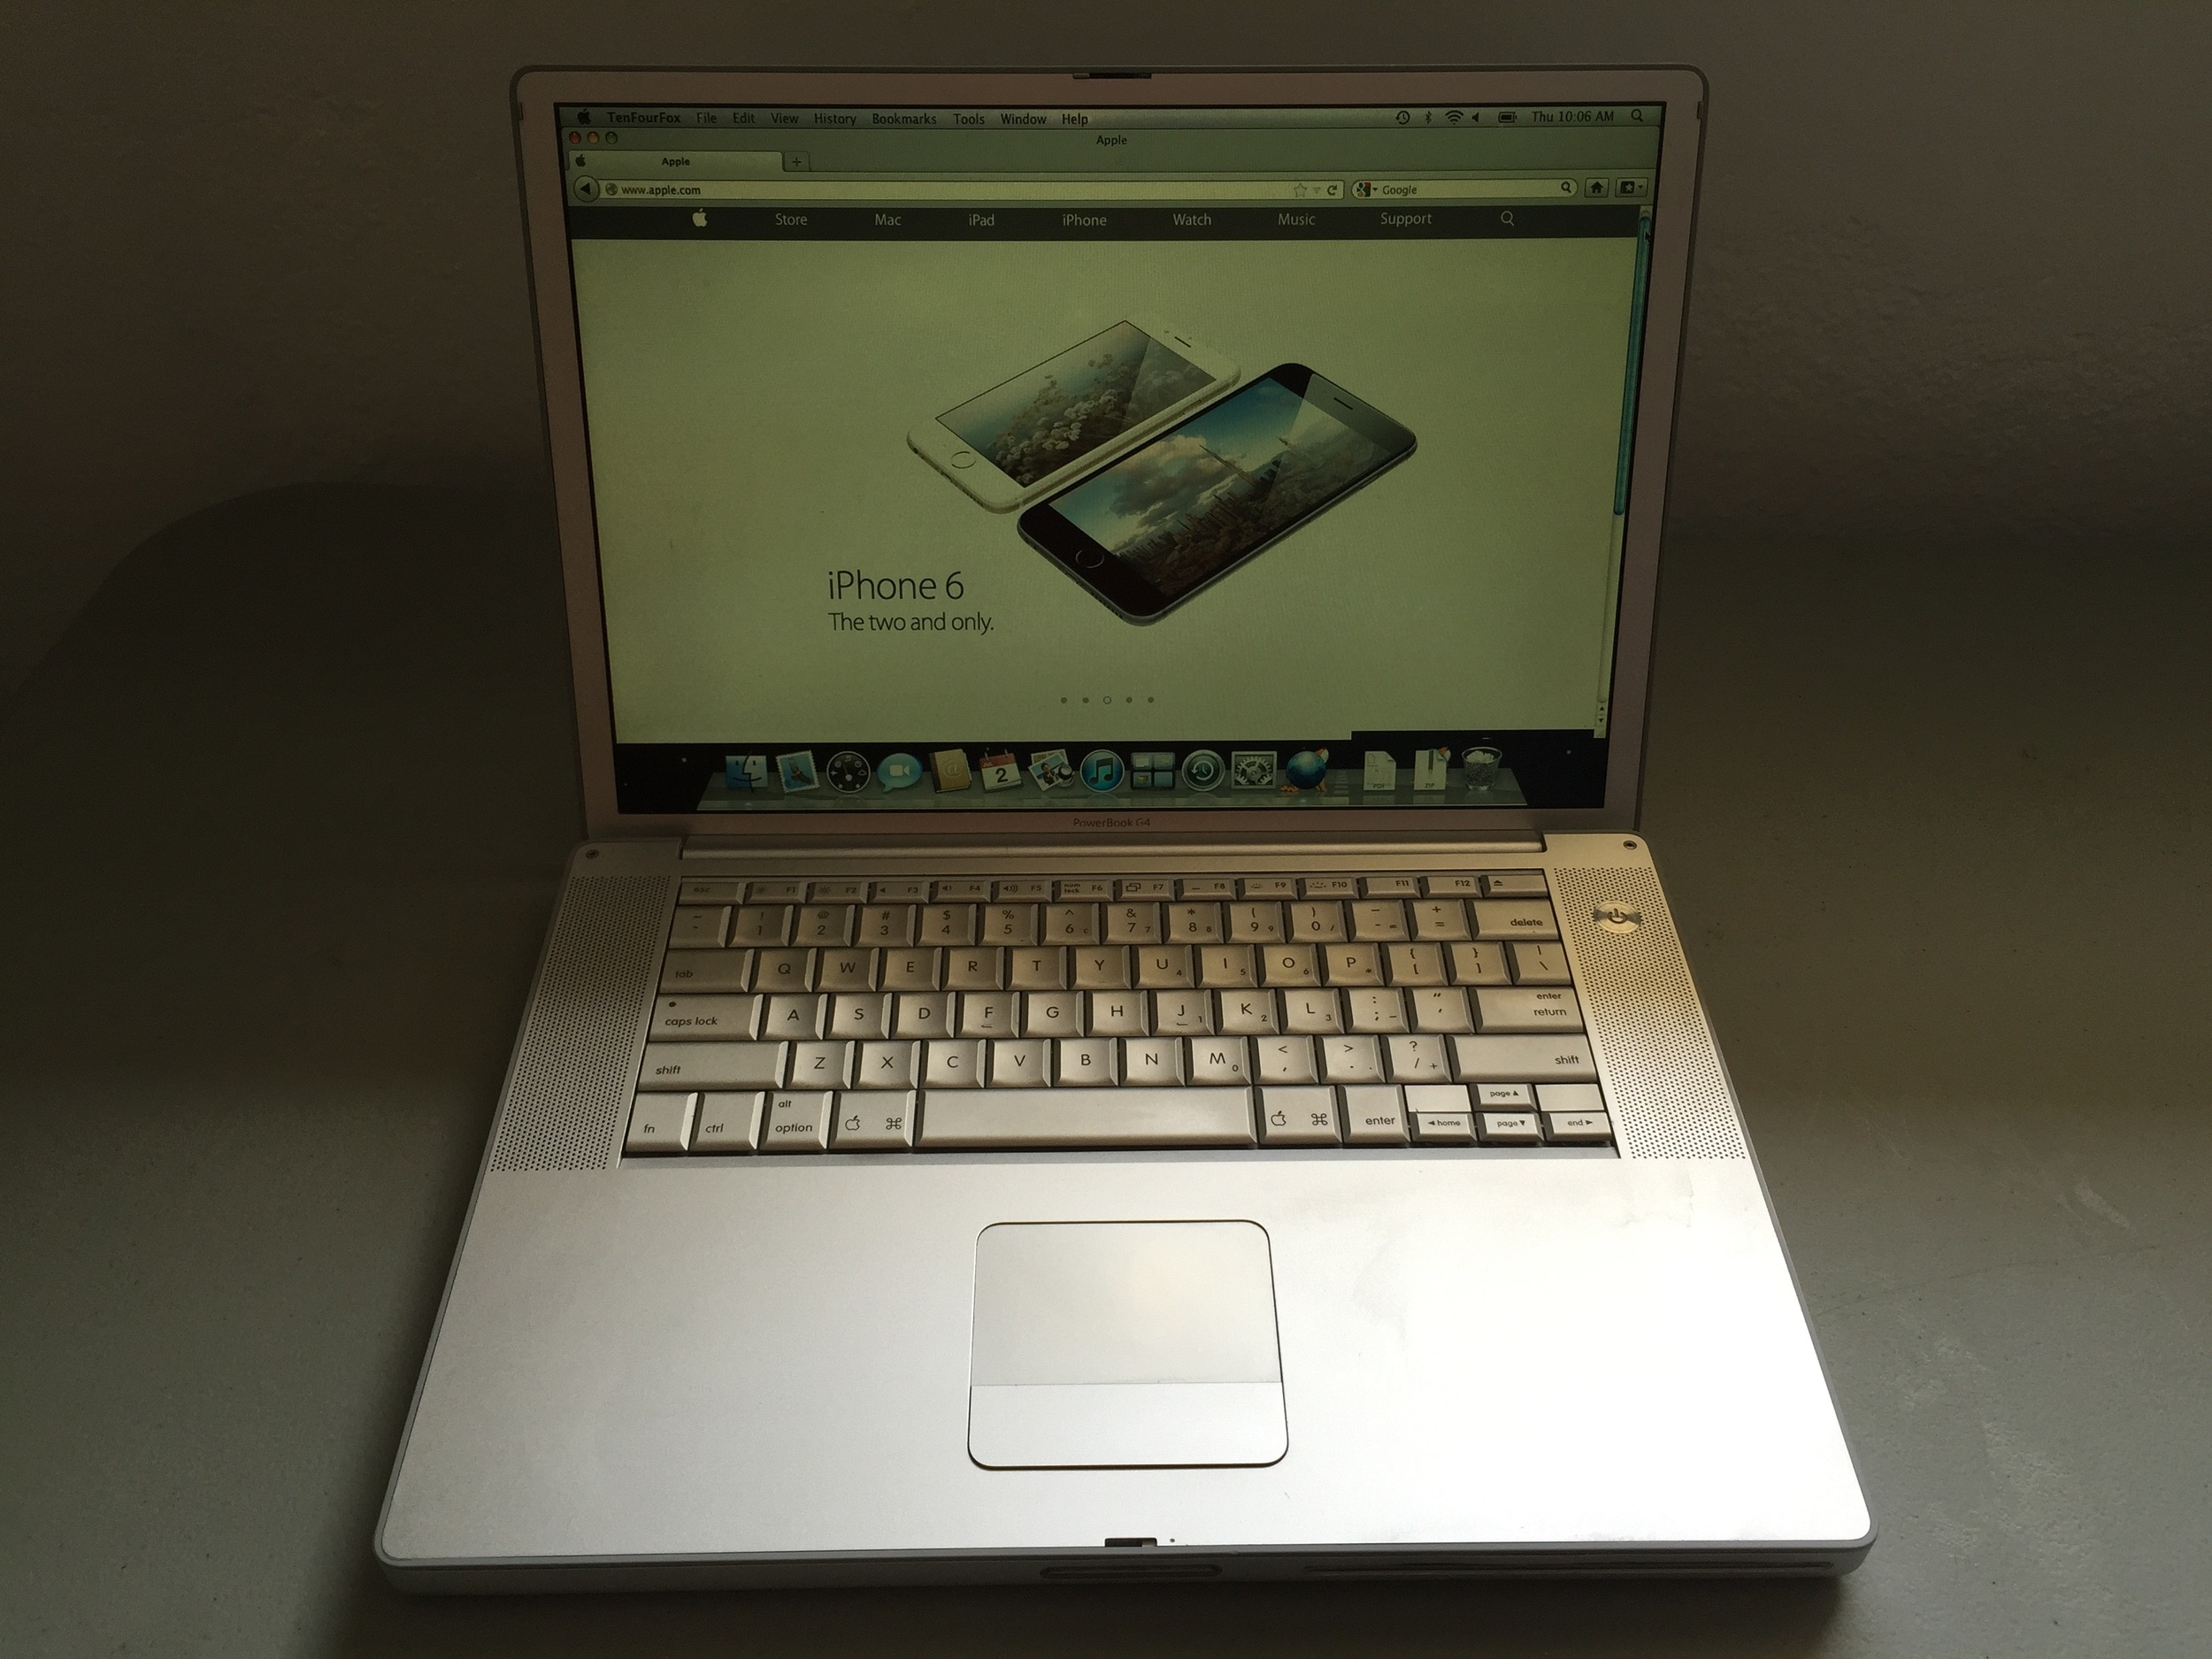 Mcbook Pro from 2008